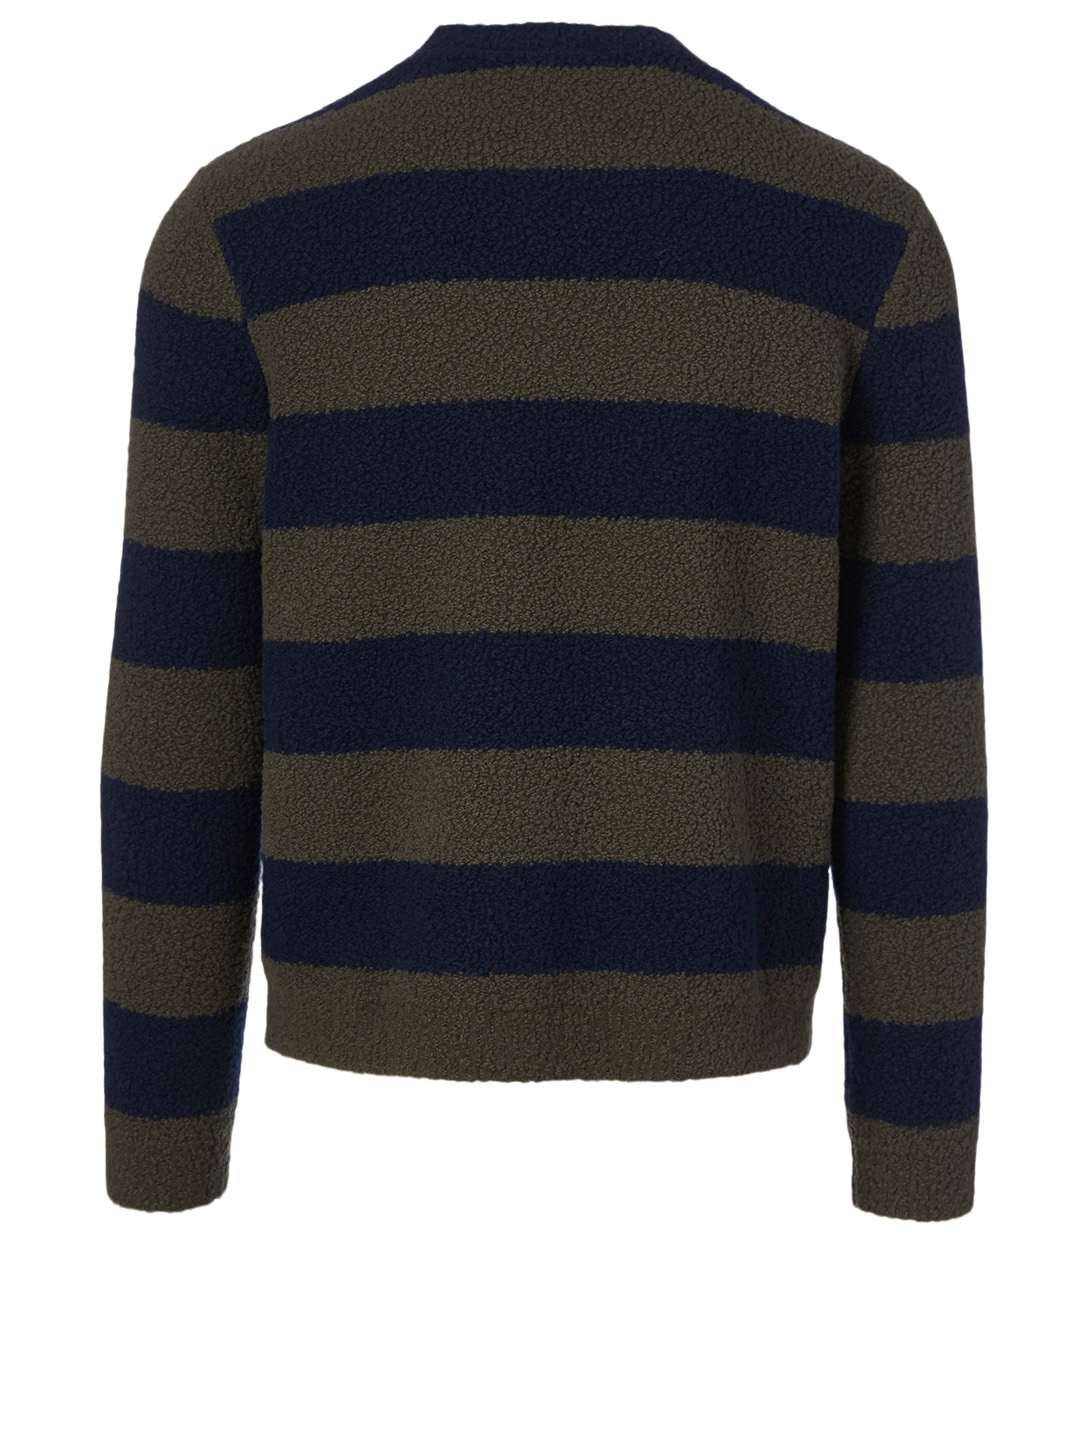 CRAIG GREEN Wool-Blend Sweater With Hole Men's Multi